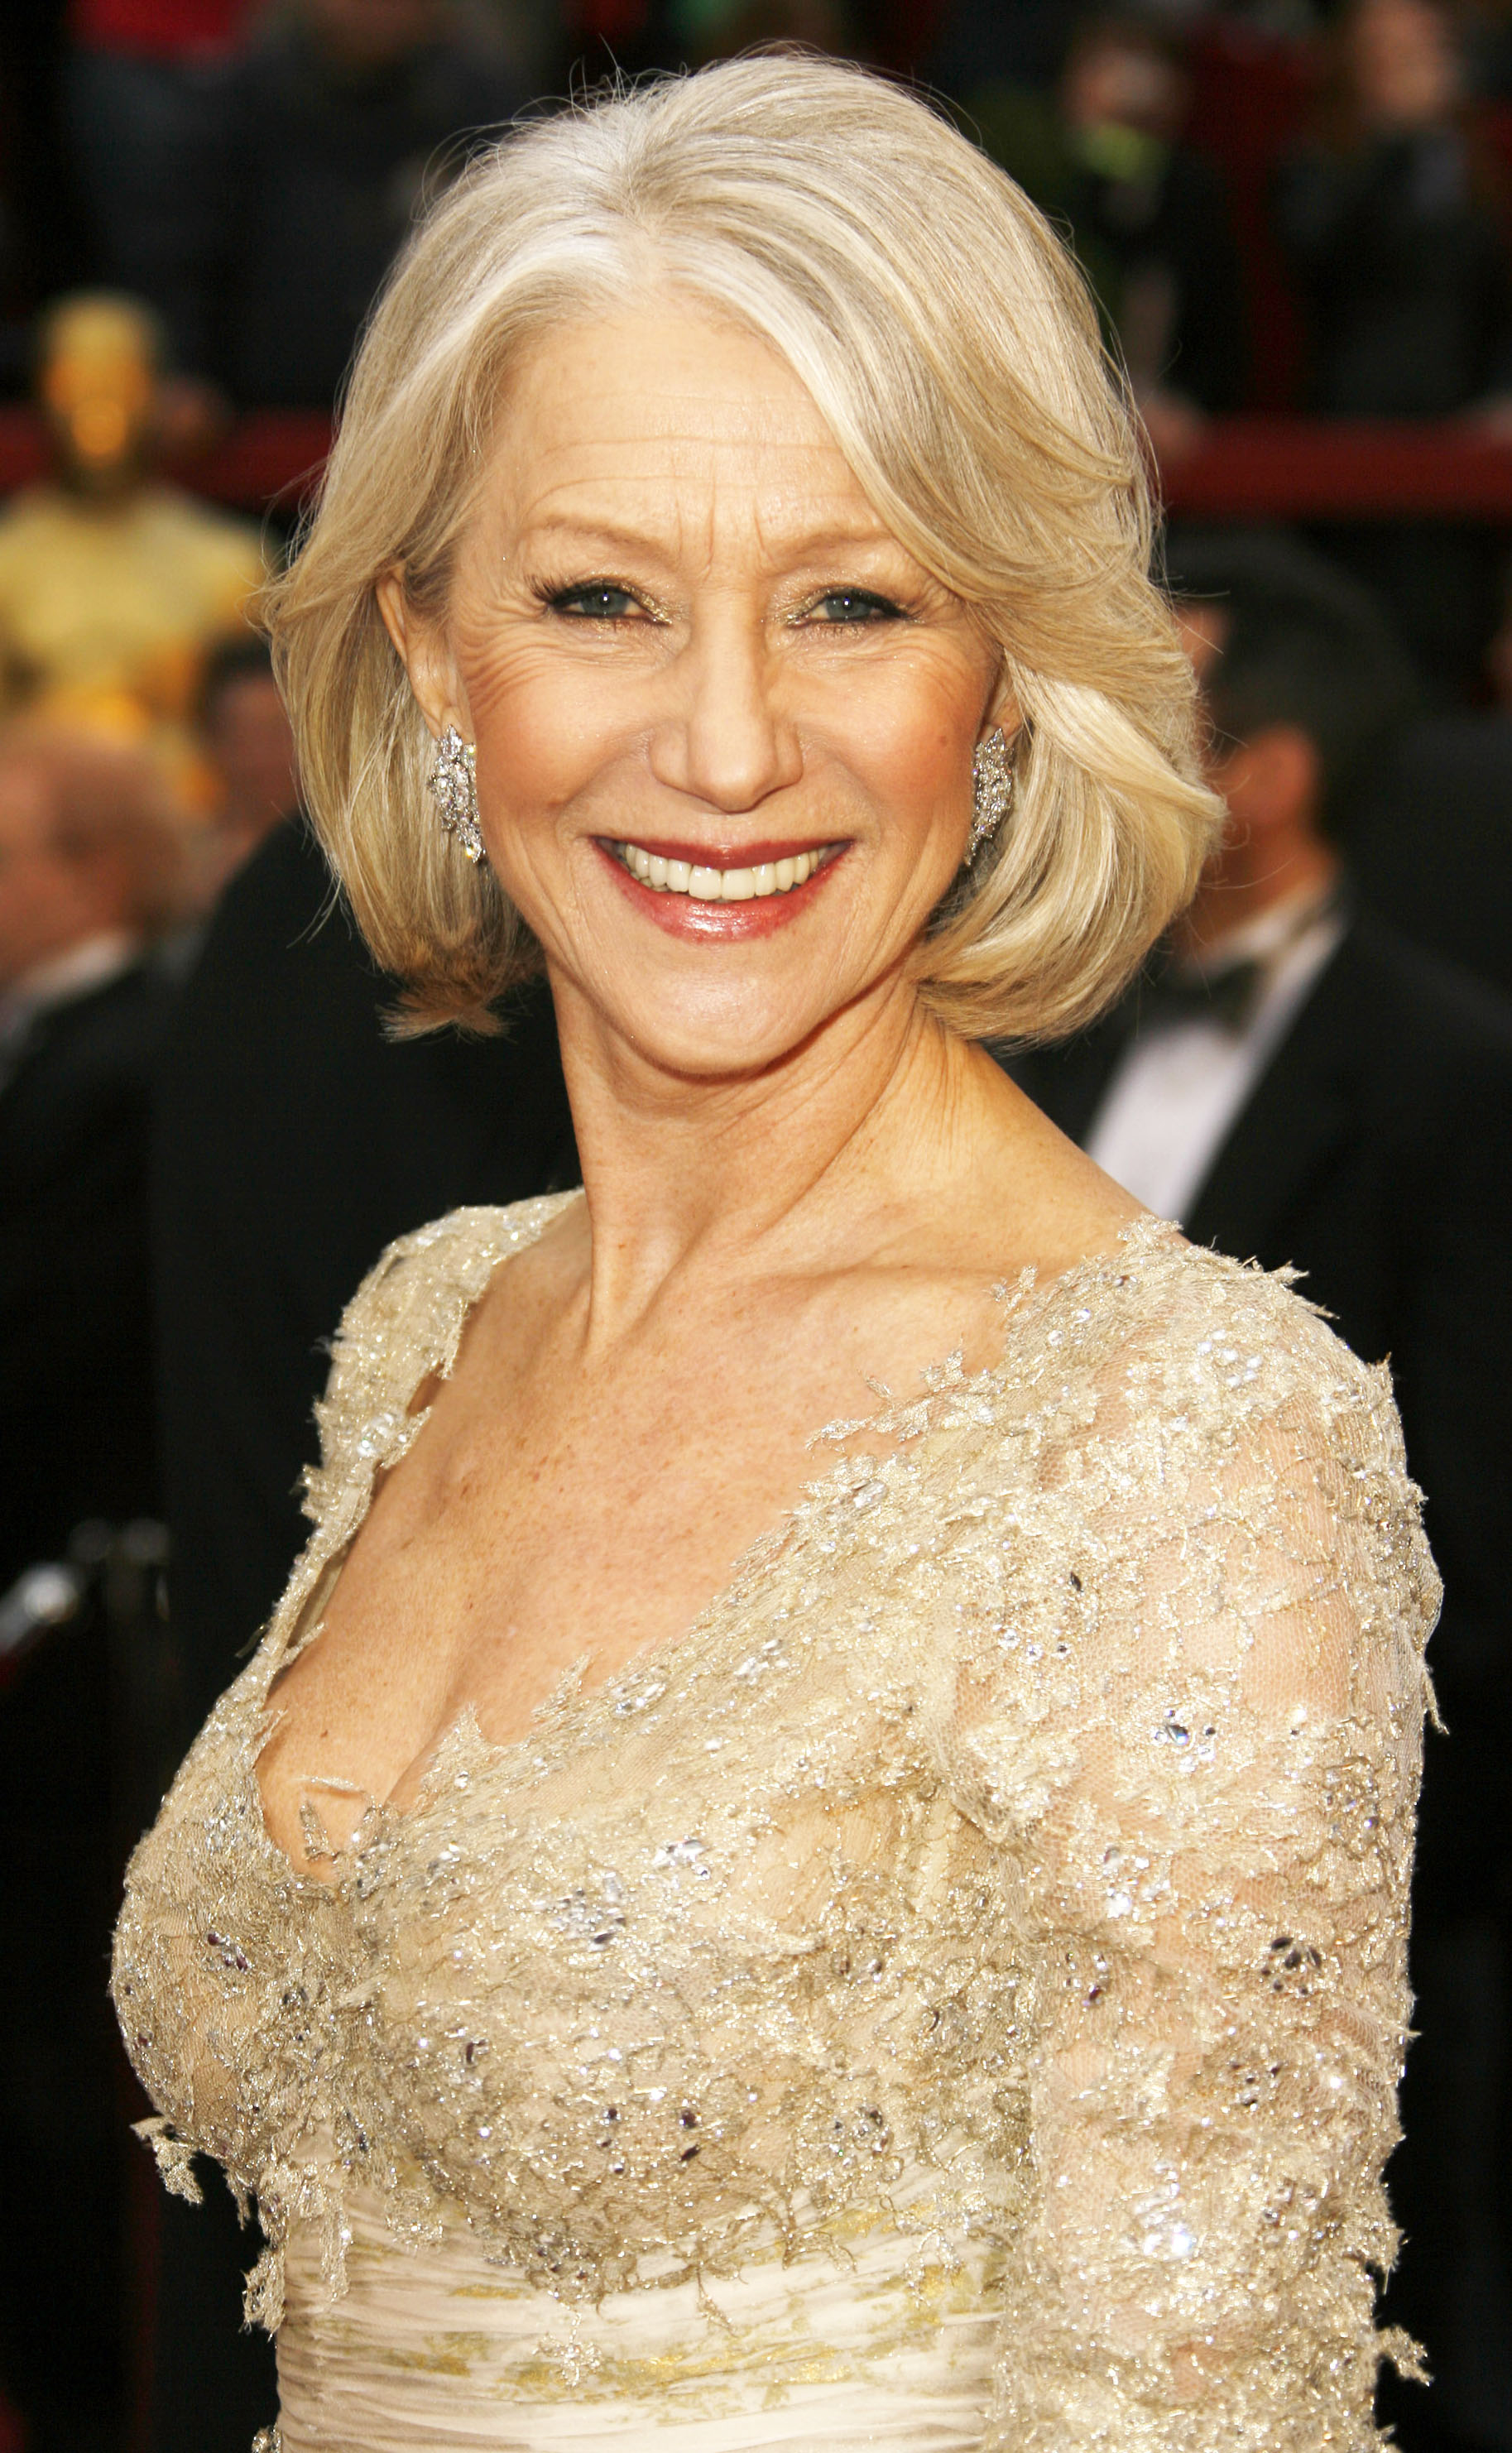 Helen Mirren (born 1945) nudes (36 foto and video), Ass, Cleavage, Selfie, bra 2006